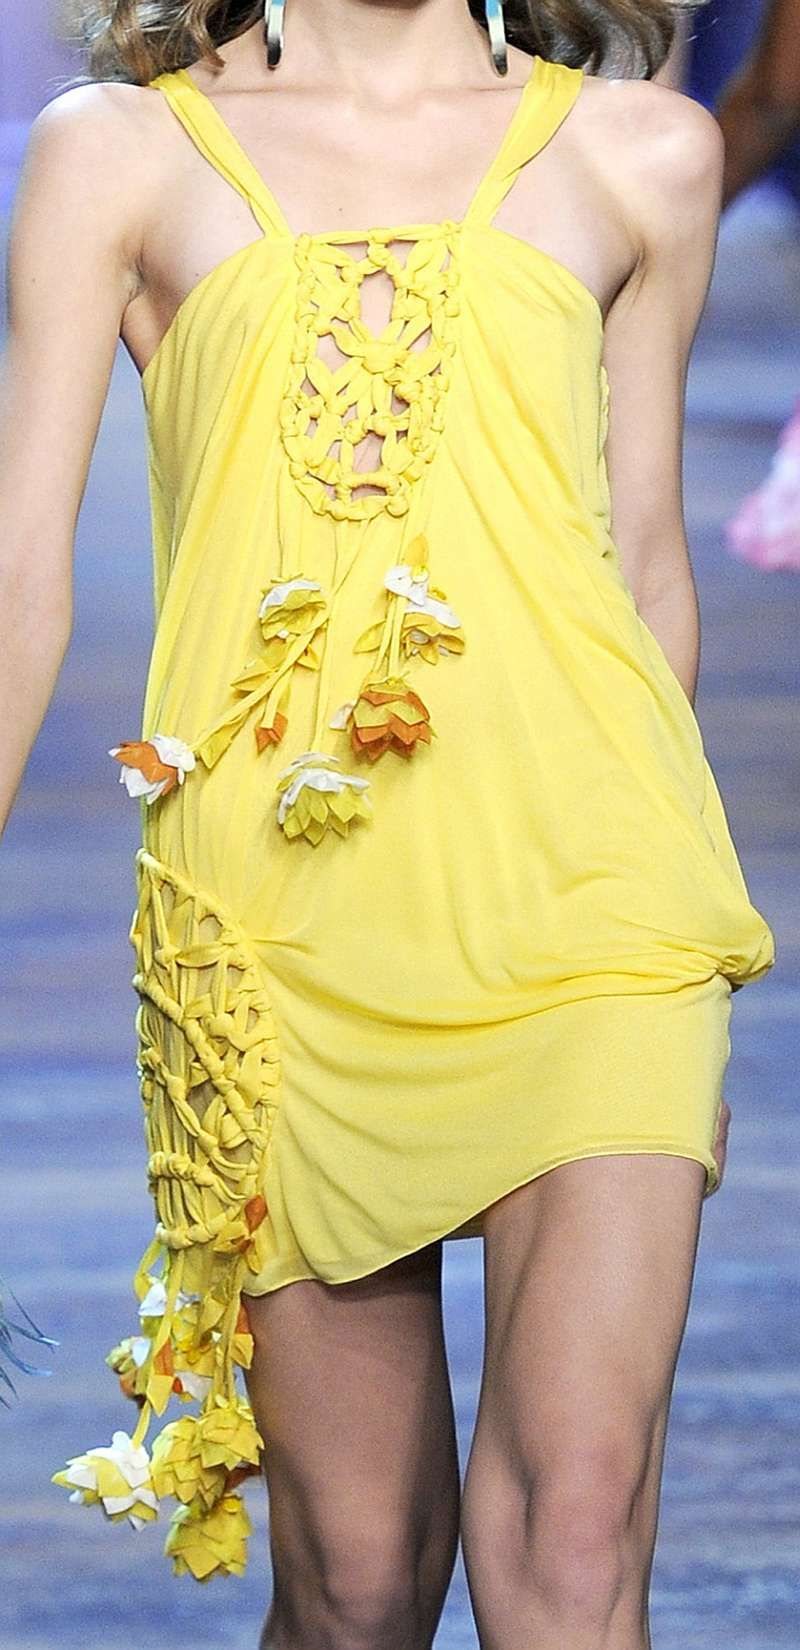 Christian dior ready to wear spring designer clothes